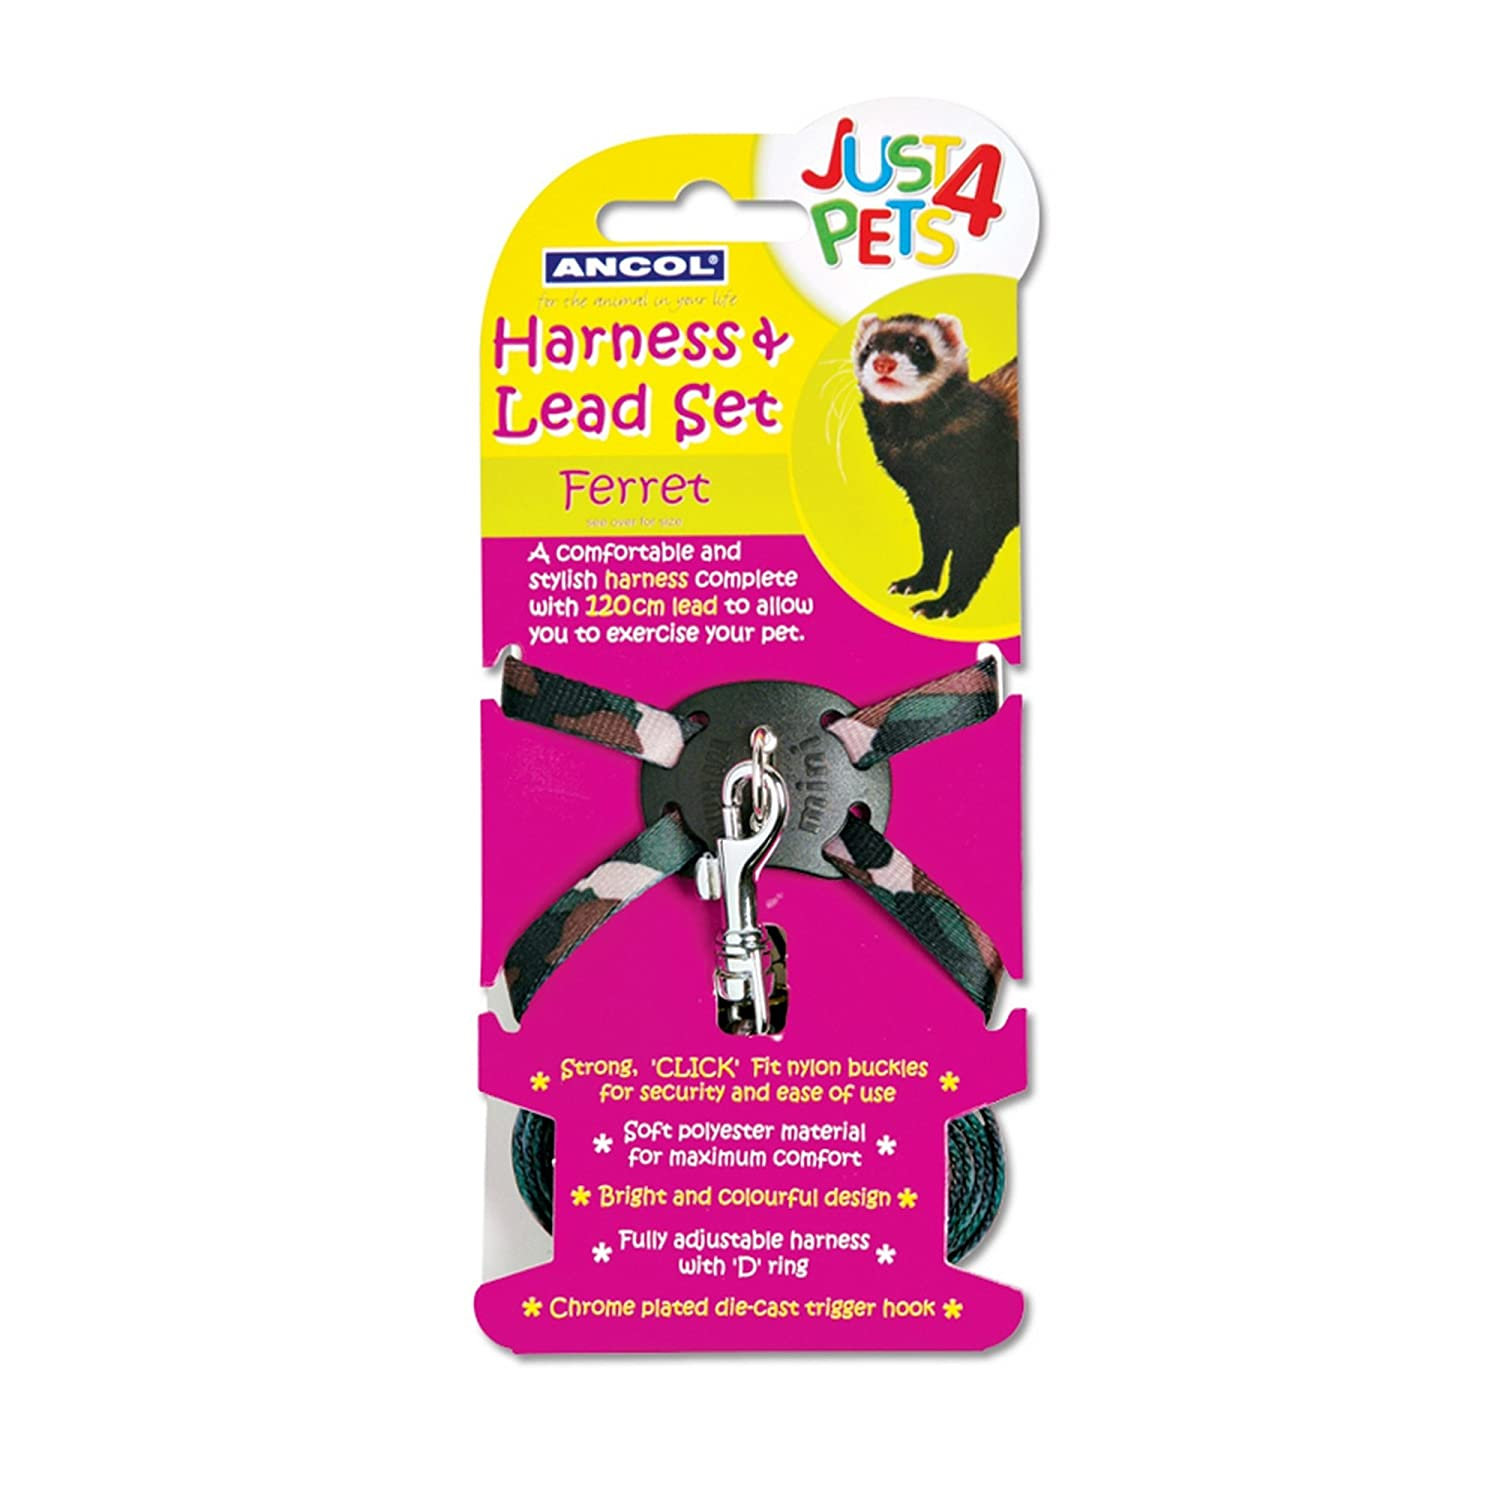 Ancol Pet Products Just 4 Pets Ferret Harness And Lead Set UTVP1056_1